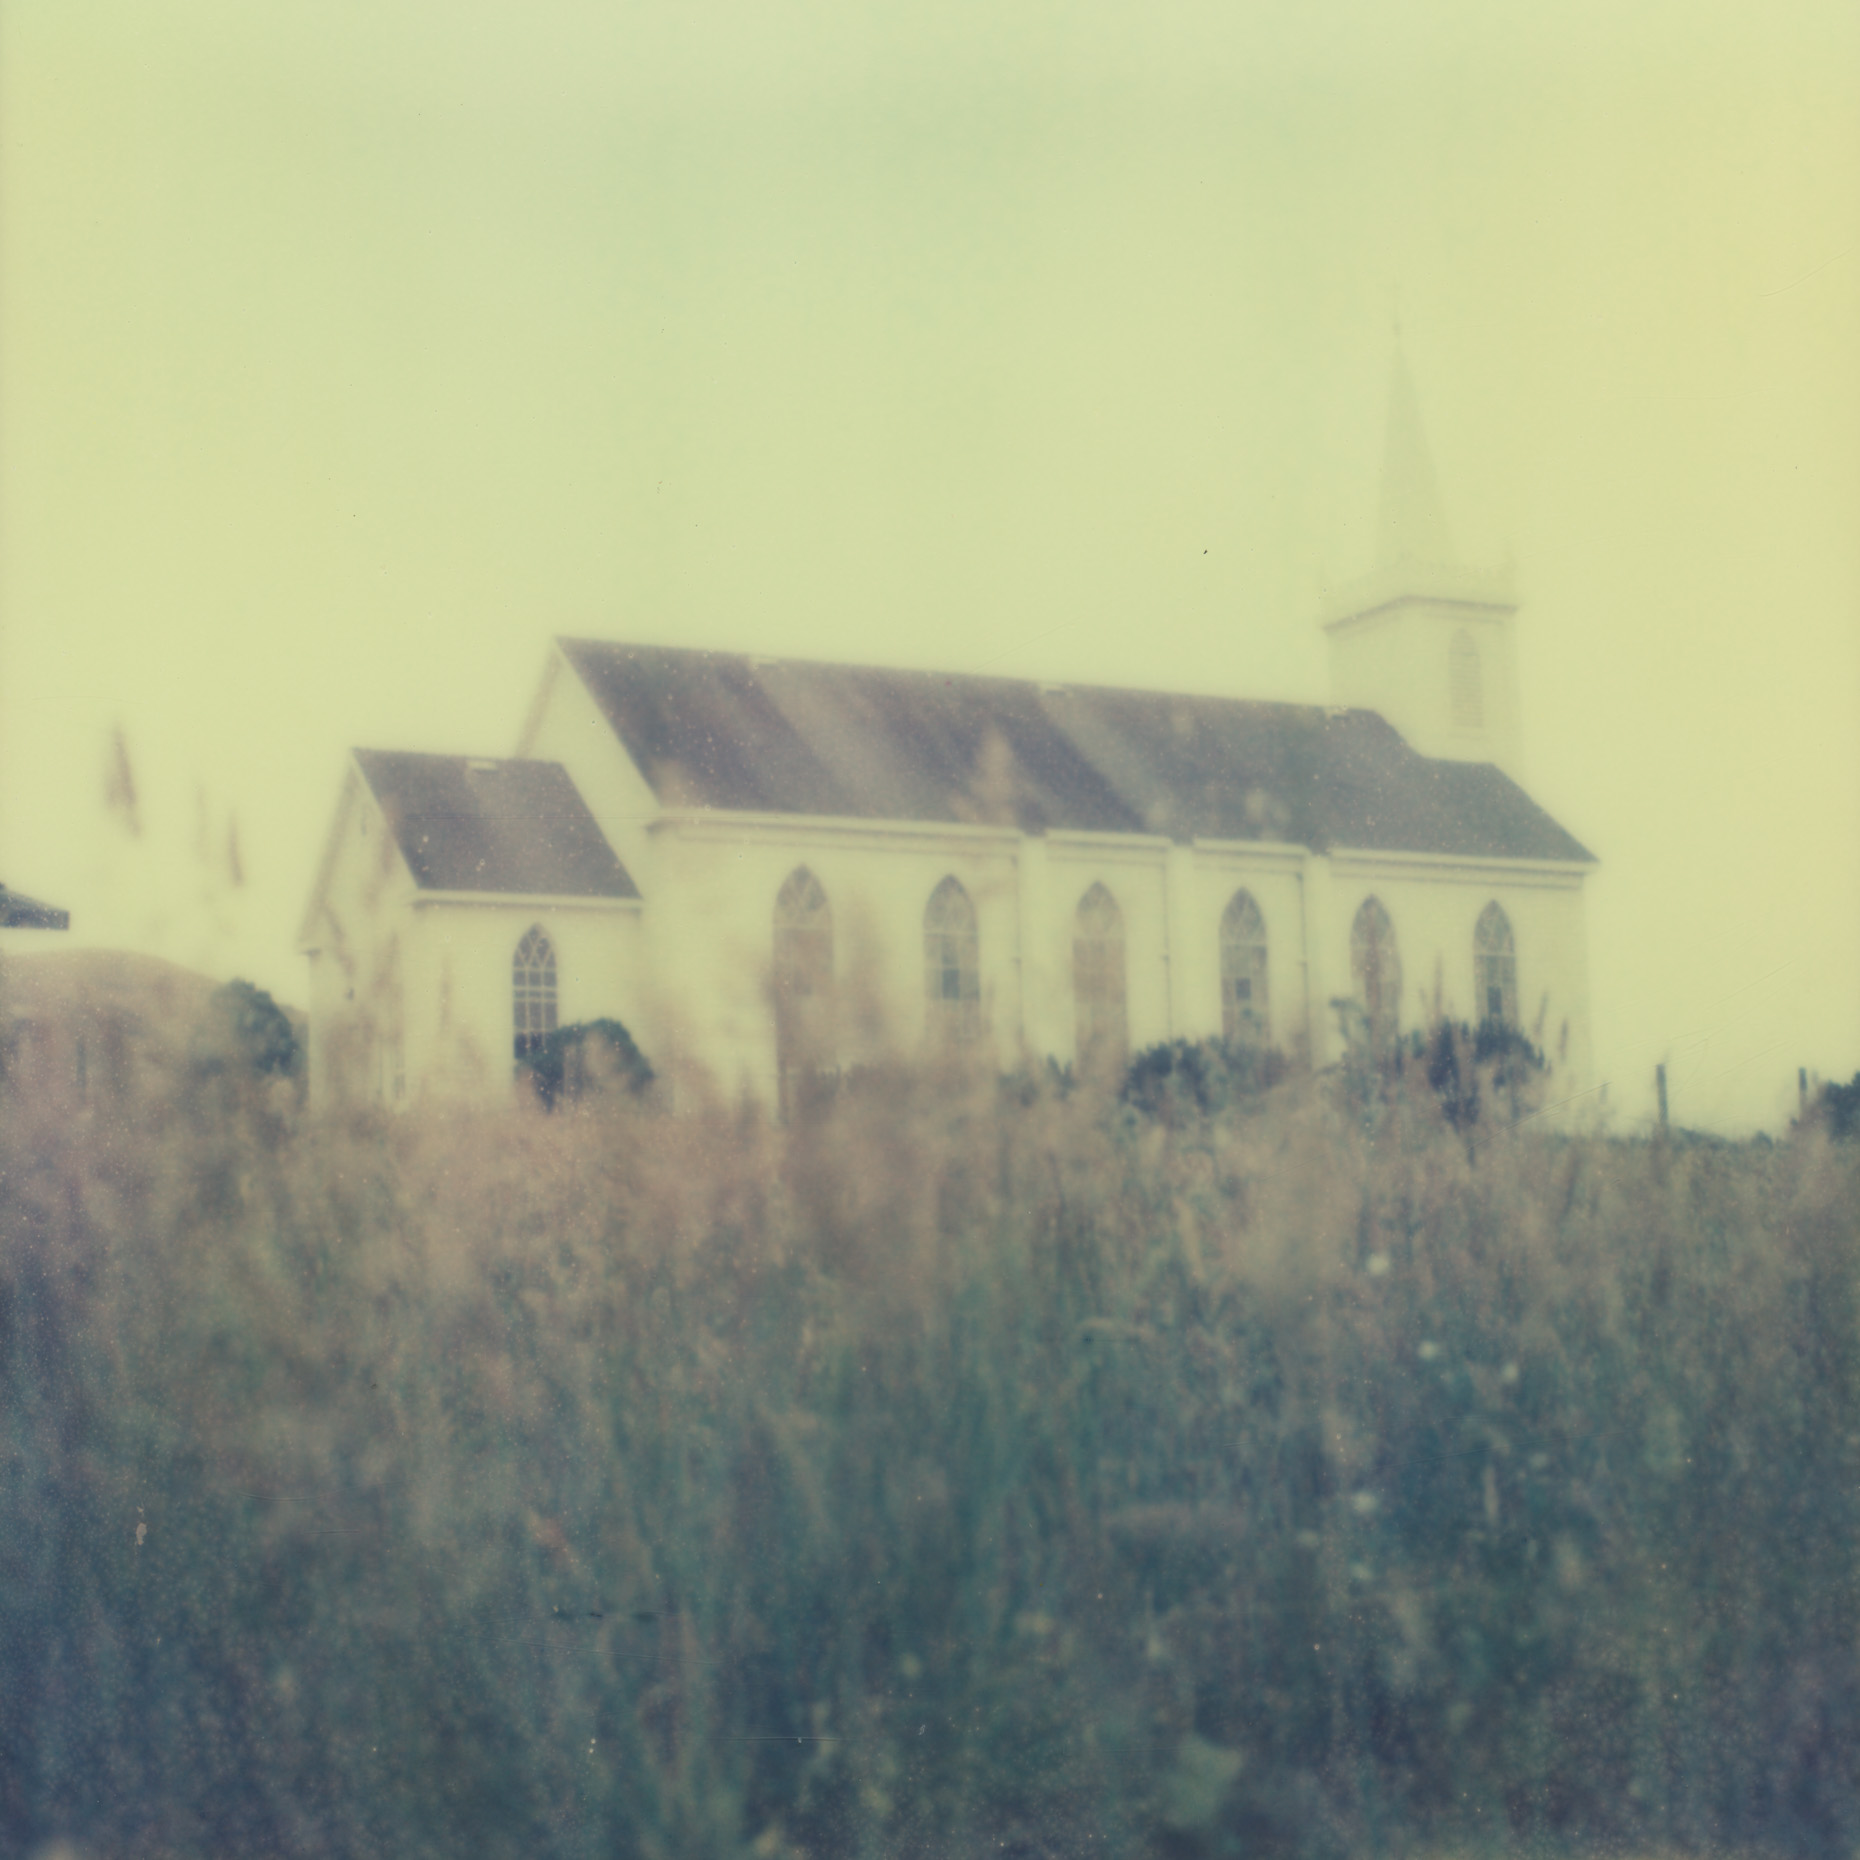 20130811-005-PX70CS-CO